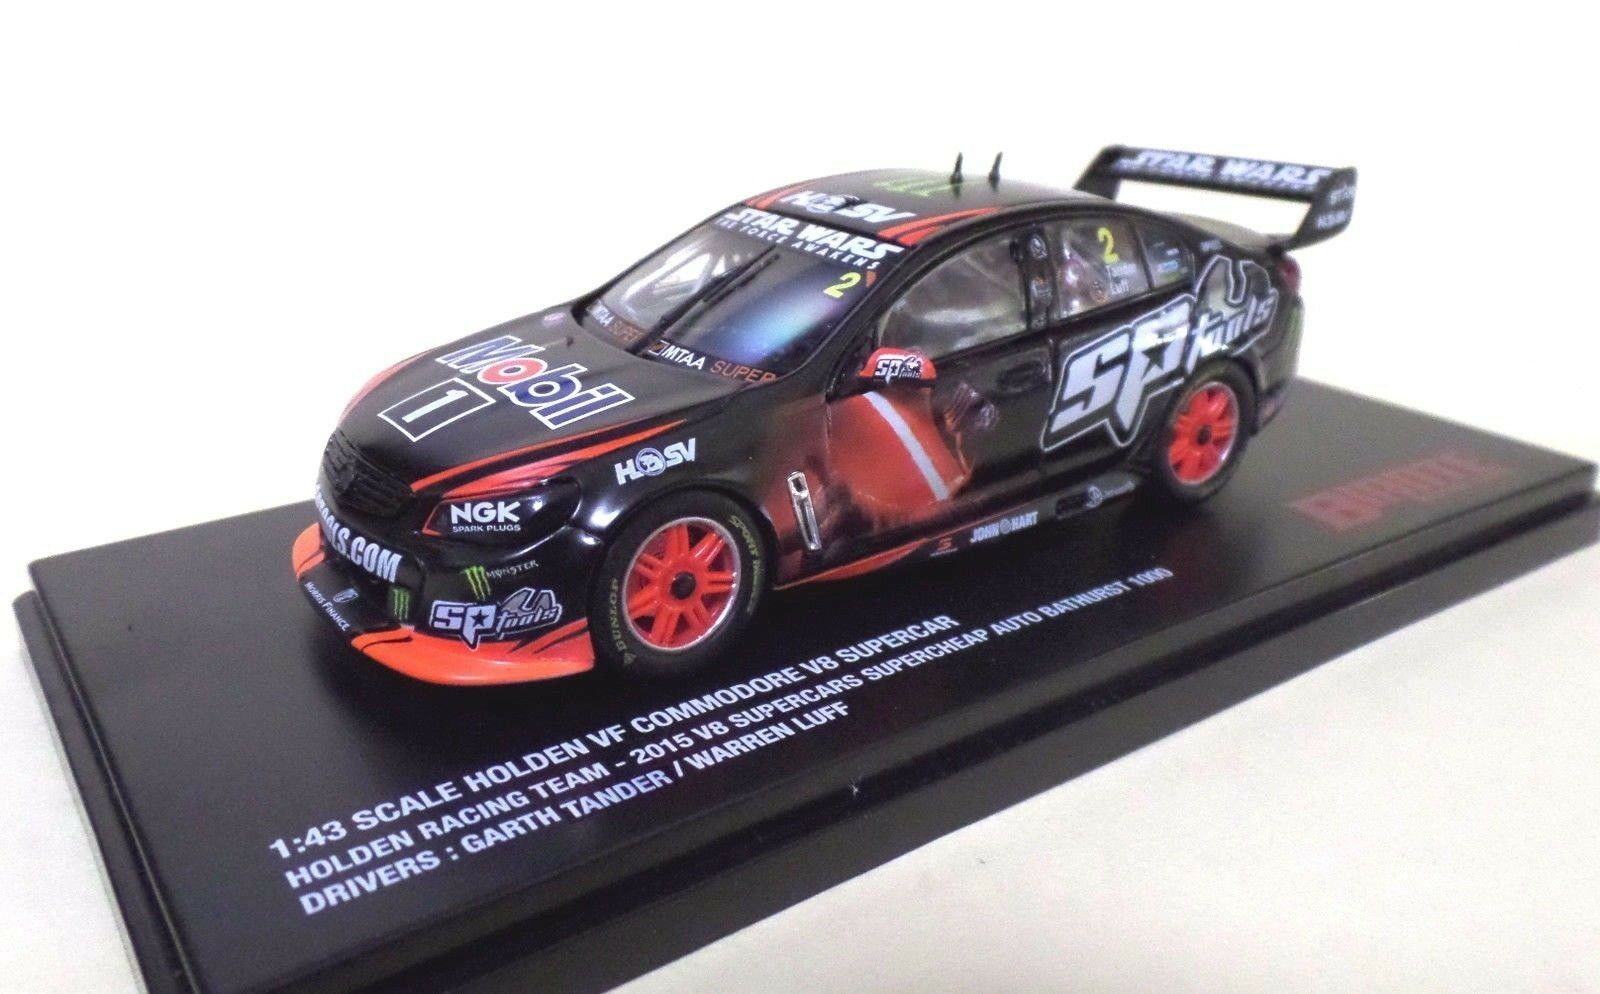 Tander/Luff Holden VF Commodore 2015 Bathurst - 1:43 scale Biante B43H15N